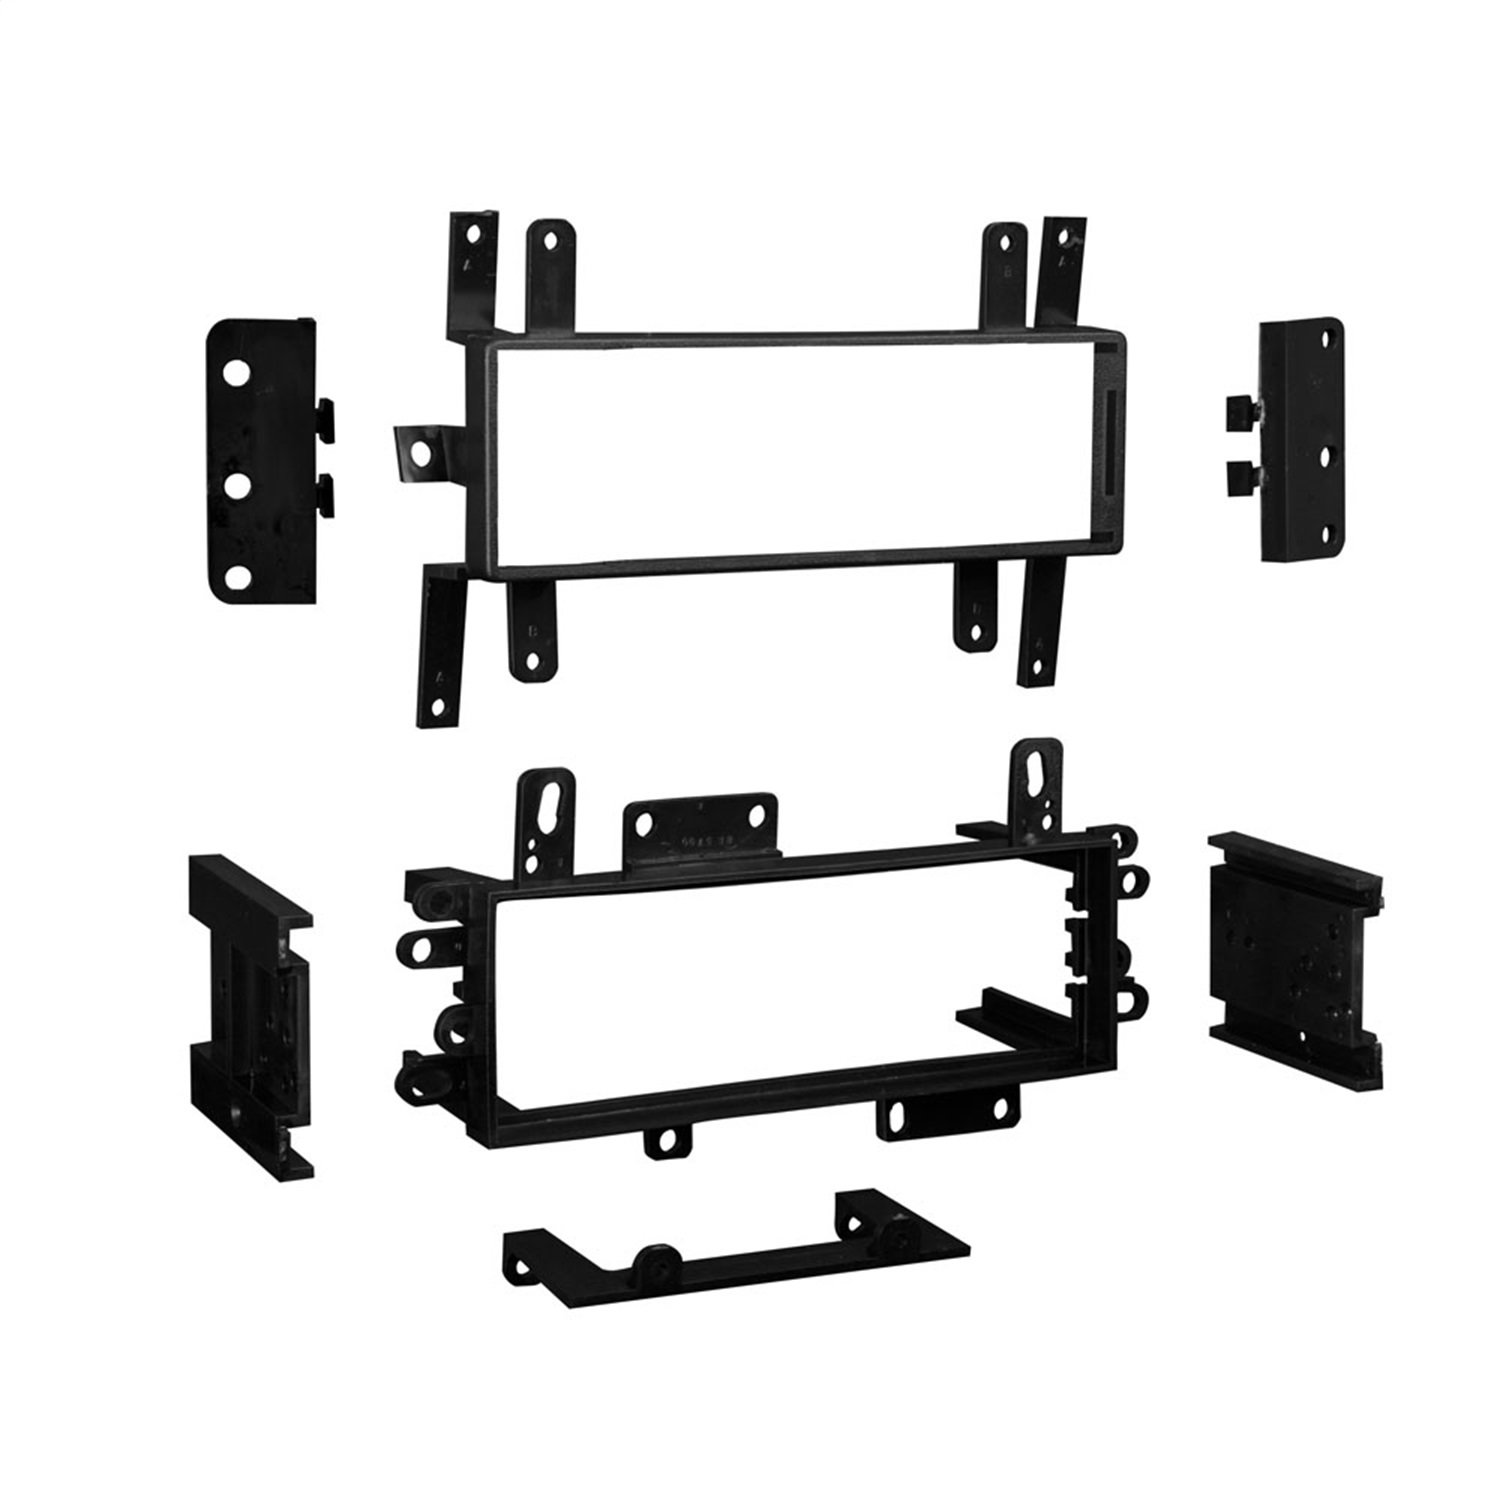 Metra 99-5700 Installation Multi-Kit for 1975-2000 Ford/Jeep/Lincoln/Mazda/Mercury Vehicles (Black)